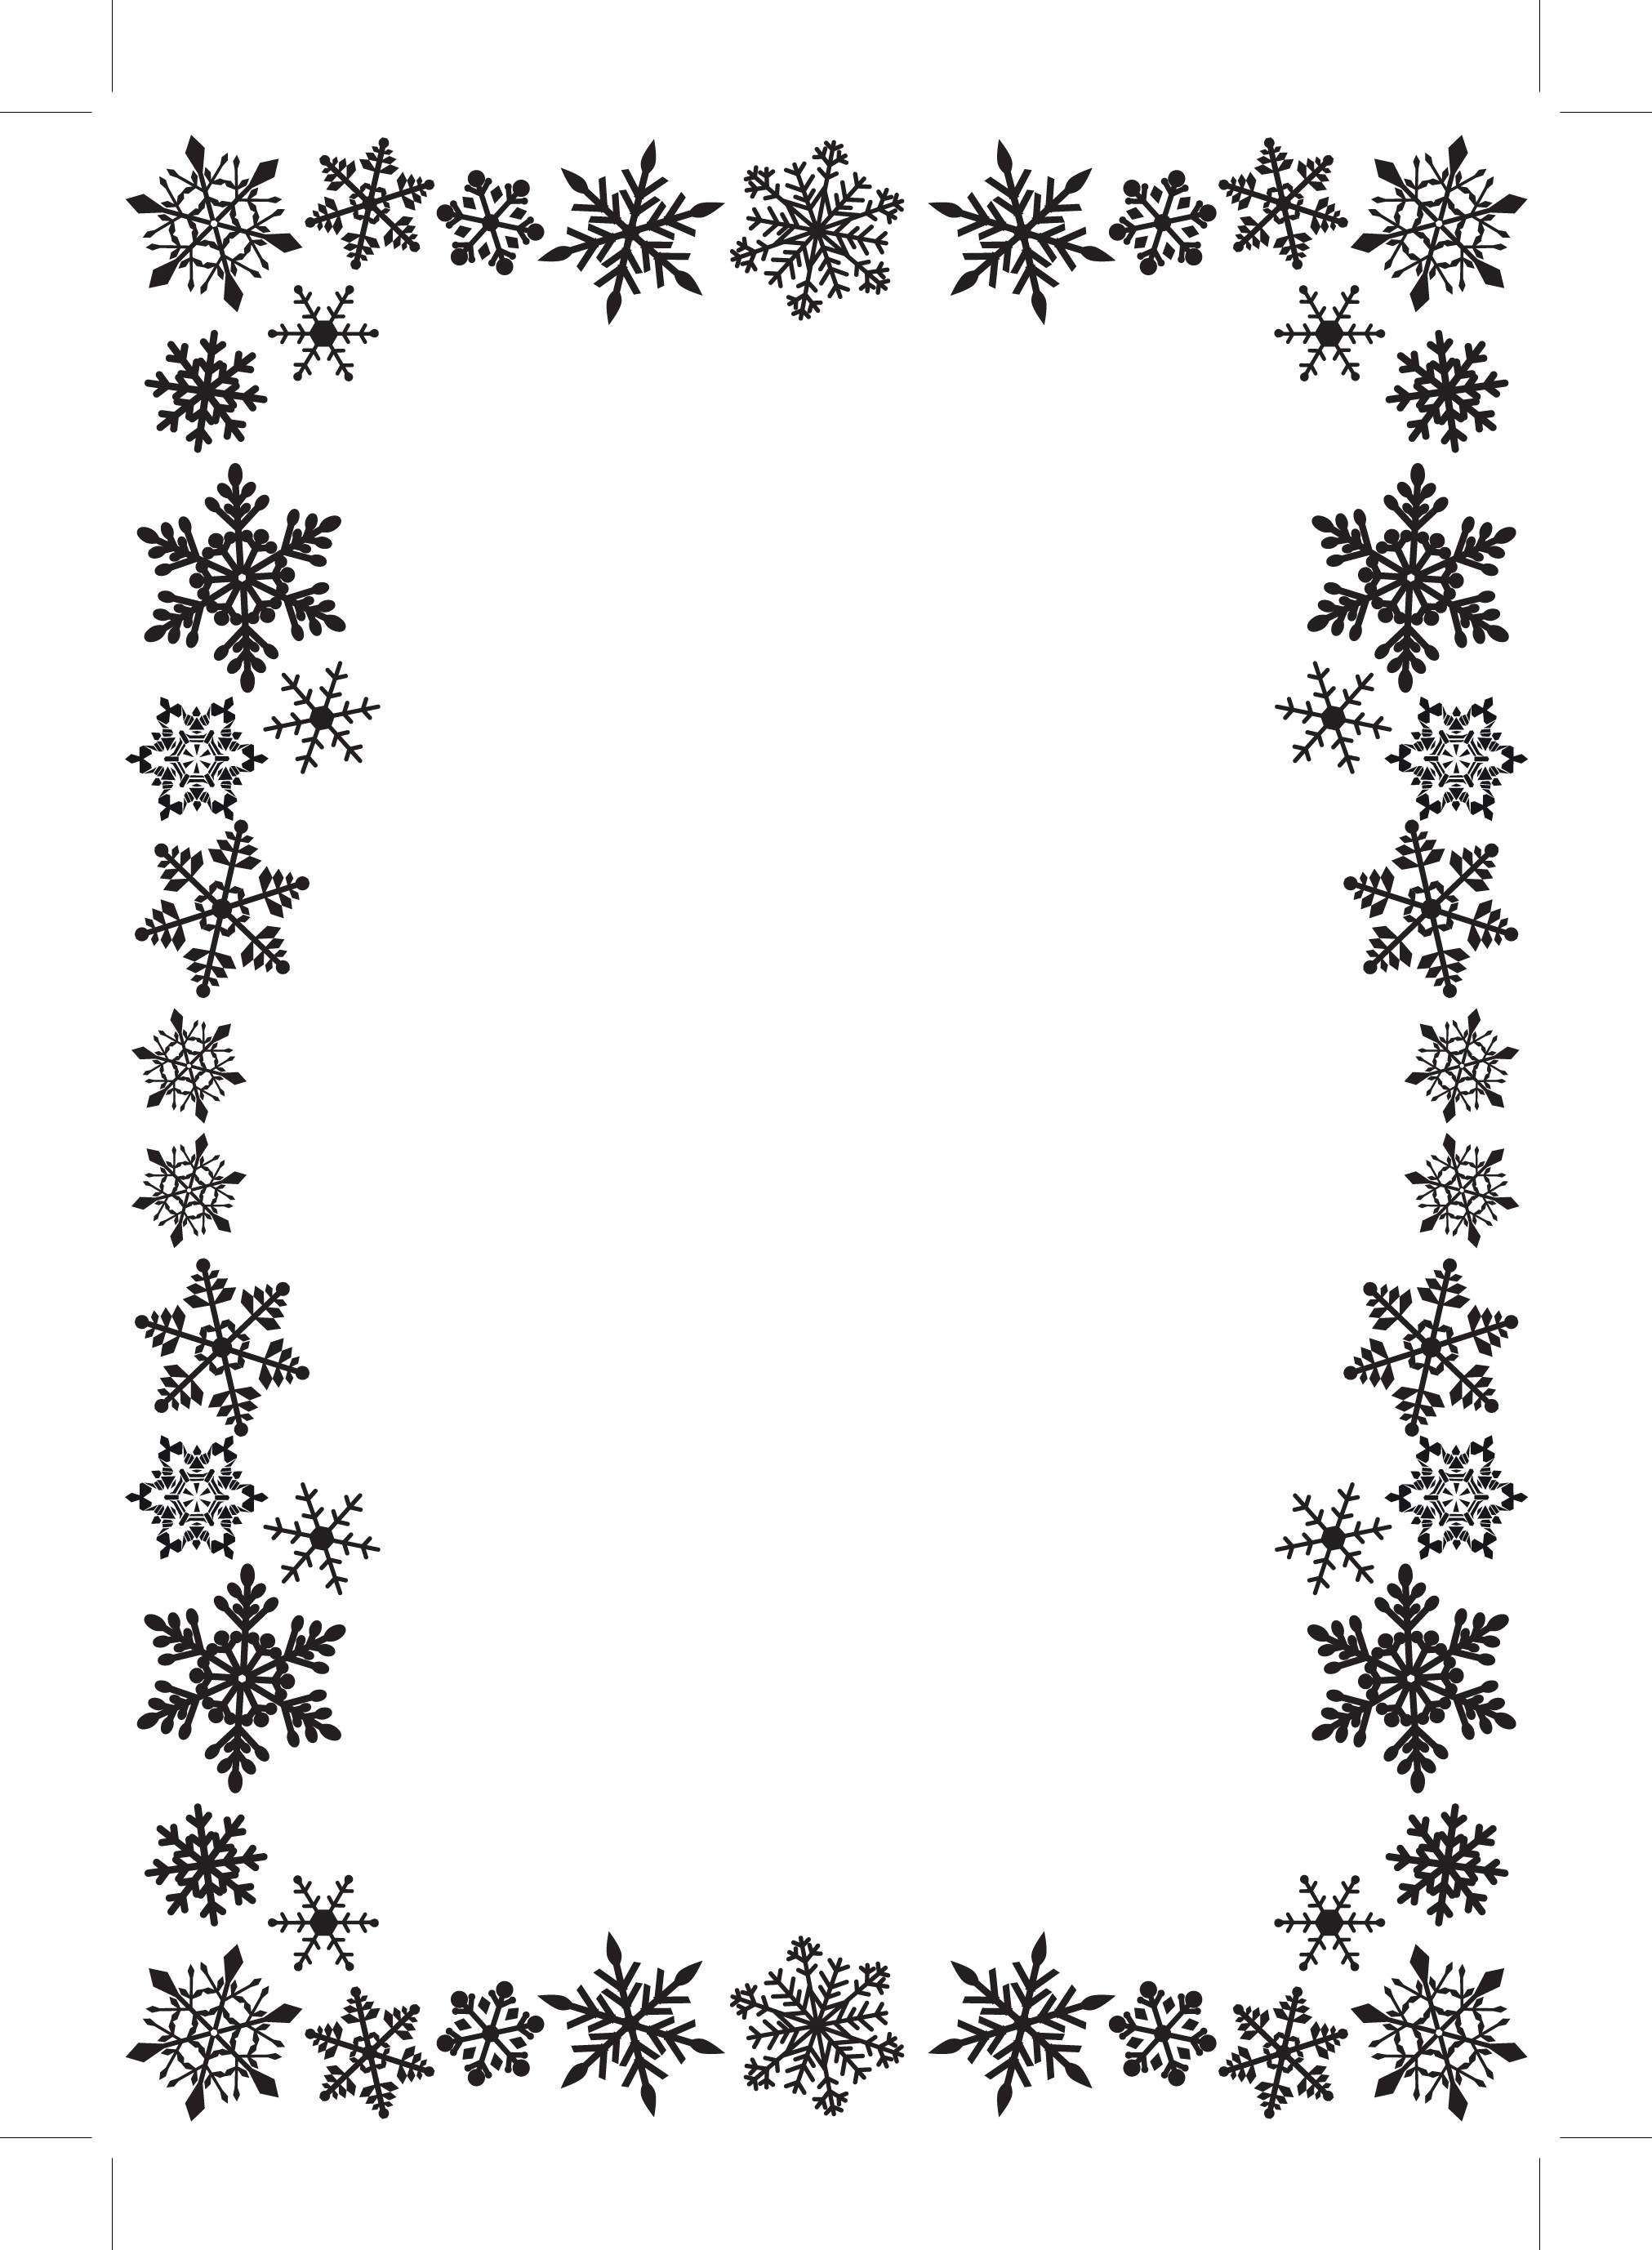 Snowflake Border Clipart Black And White.